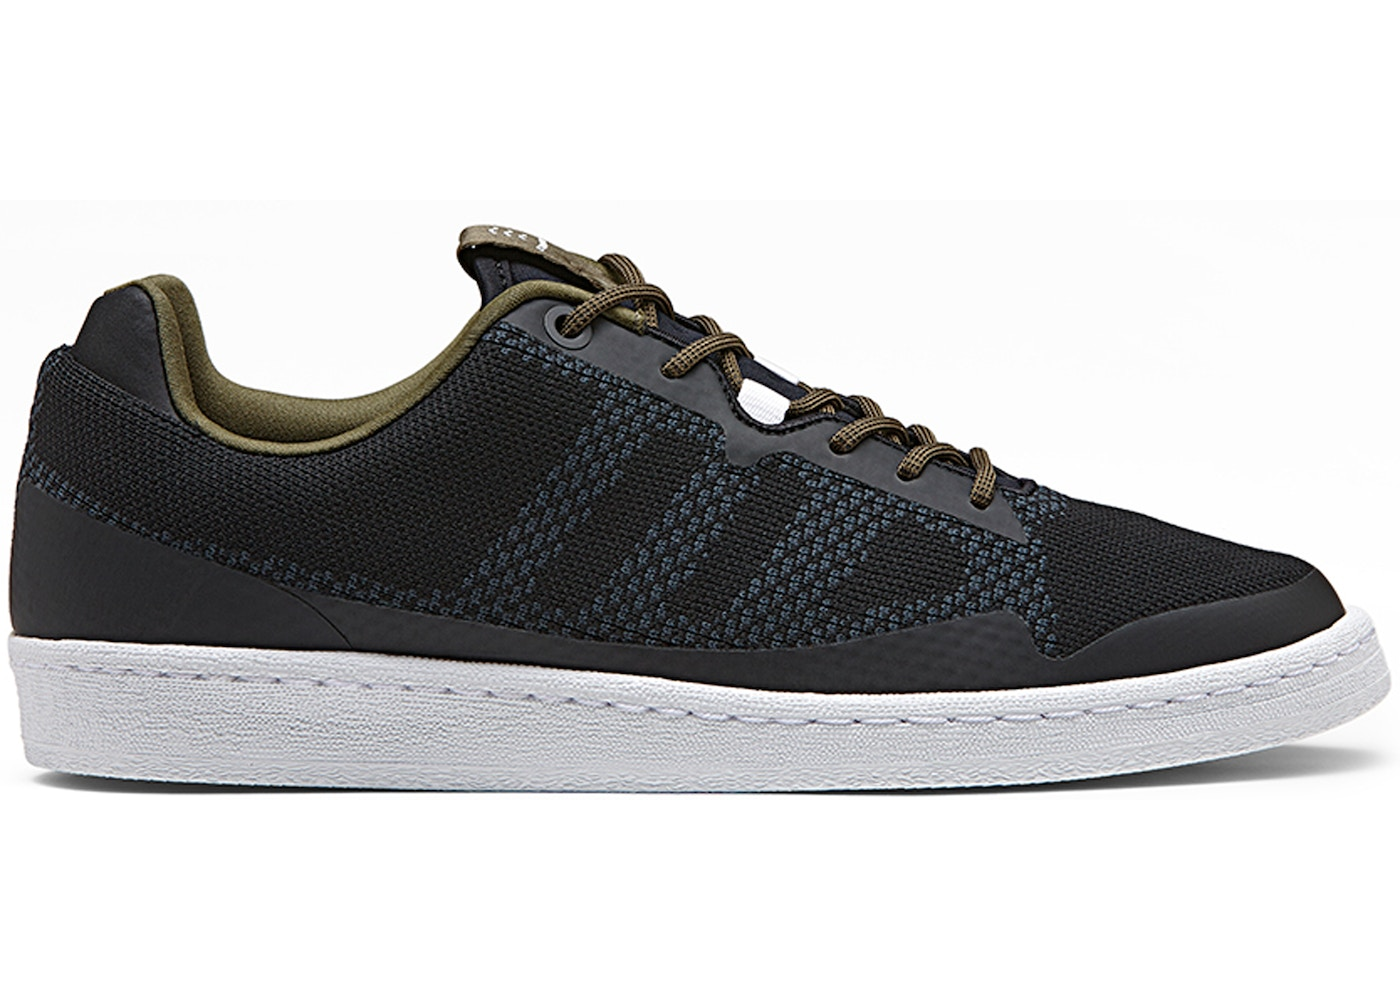 newest d64bd f9be4 adidas Other Shoes - Lowest Ask